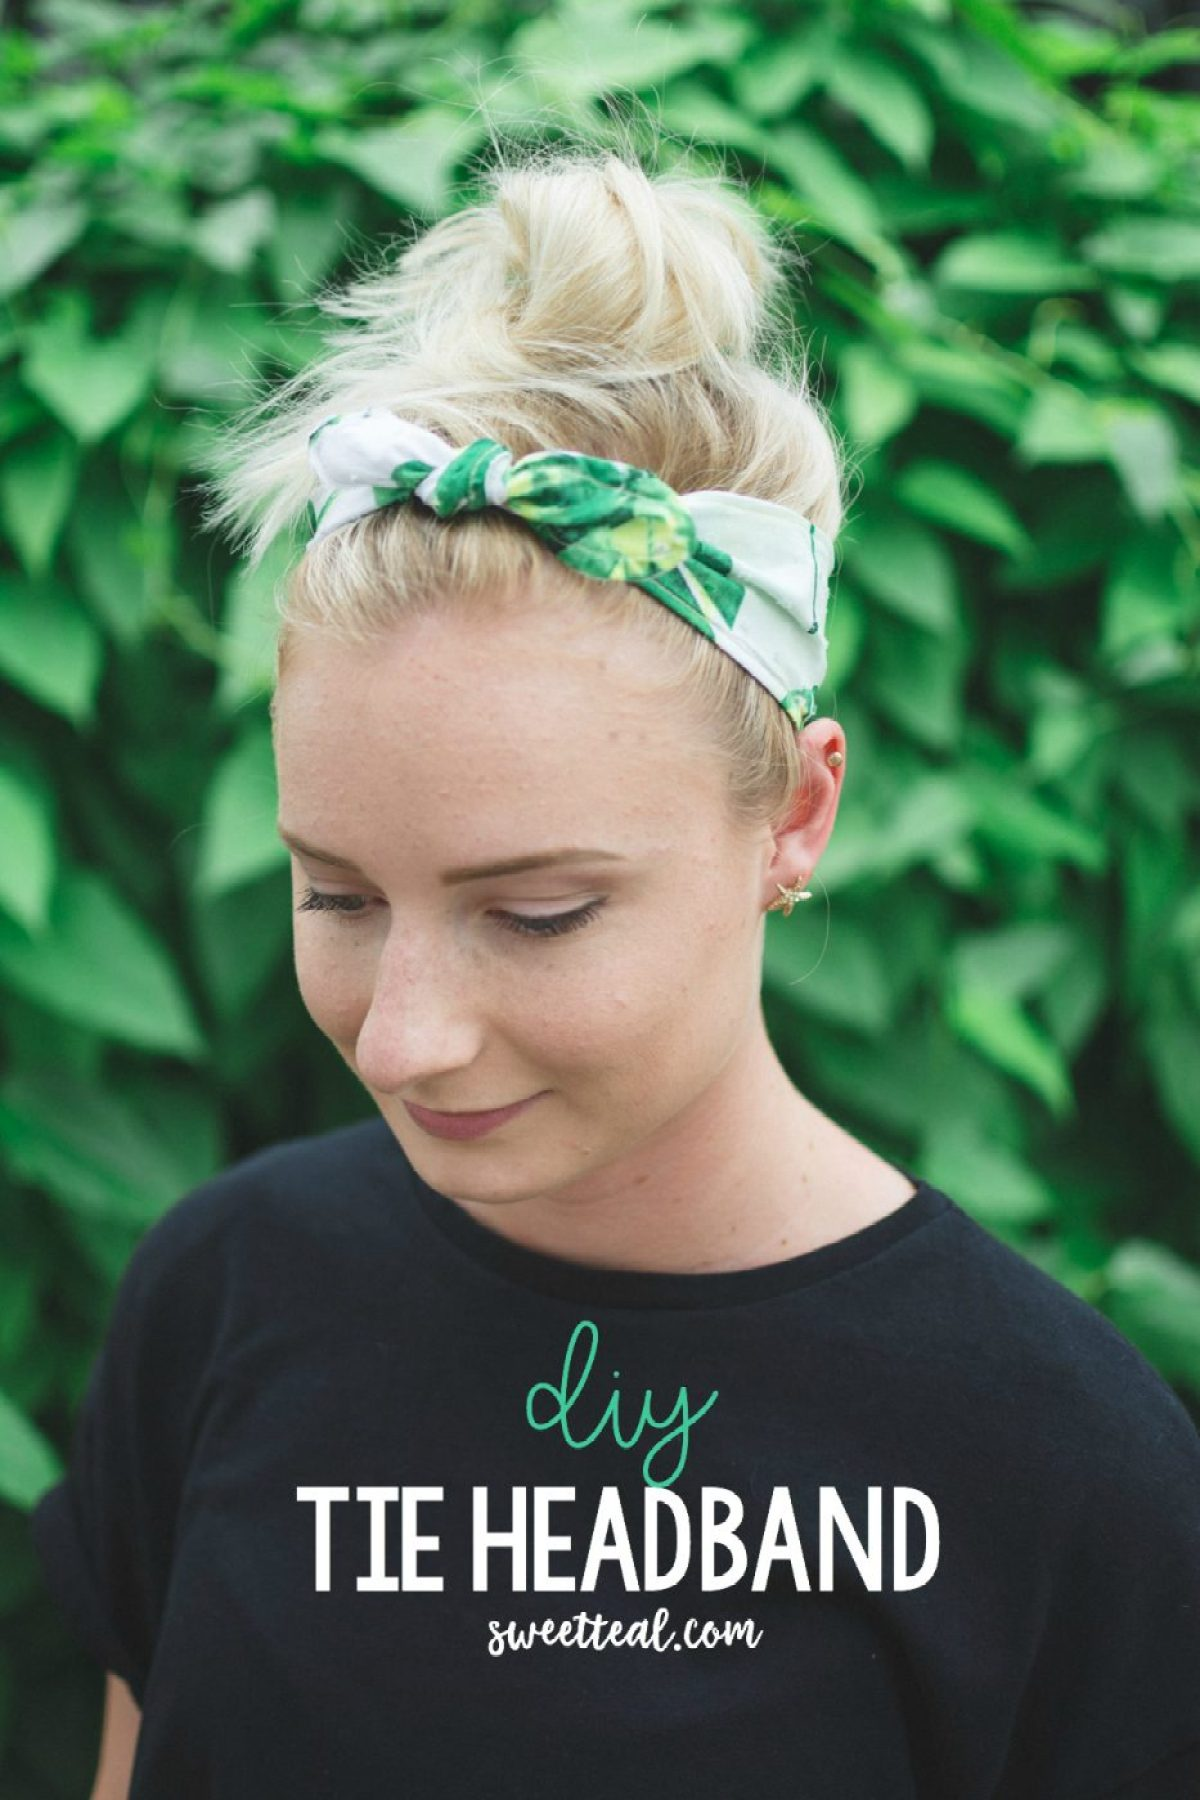 DIY Tie Headband by Jenny of Sweet Teal